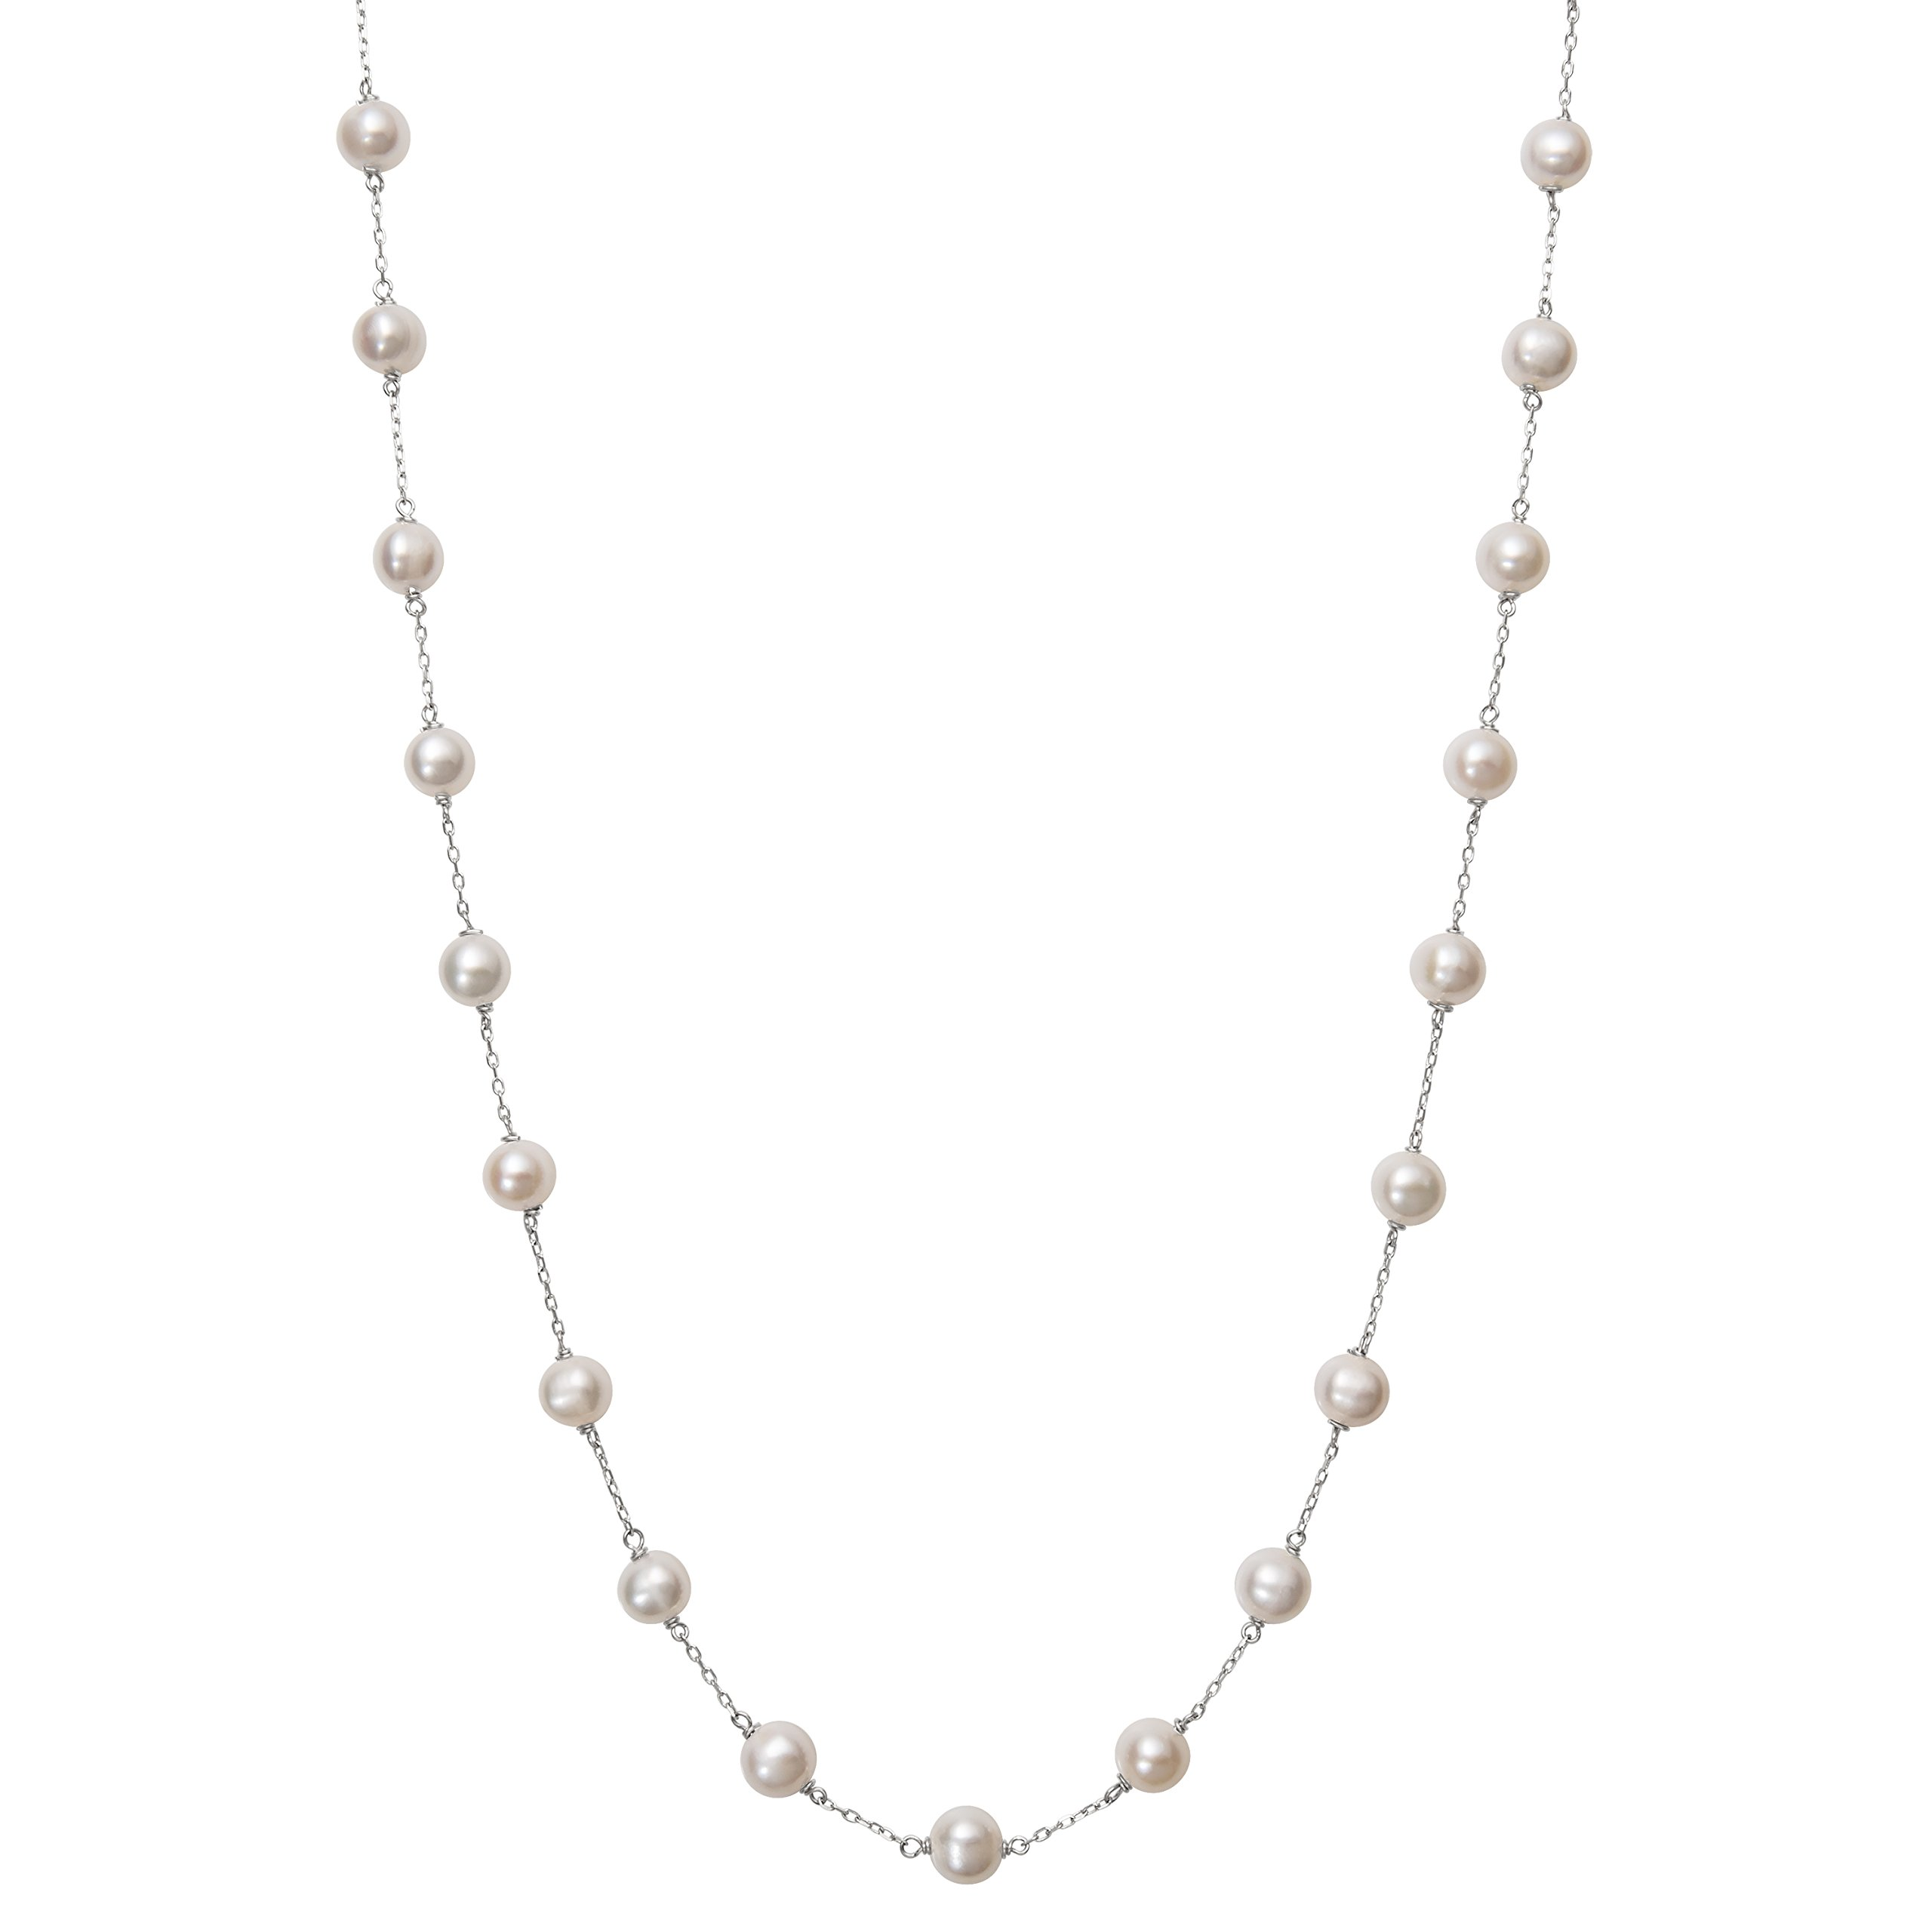 10k White Gold Freshwater Cultured Pearl Station Necklace,18''